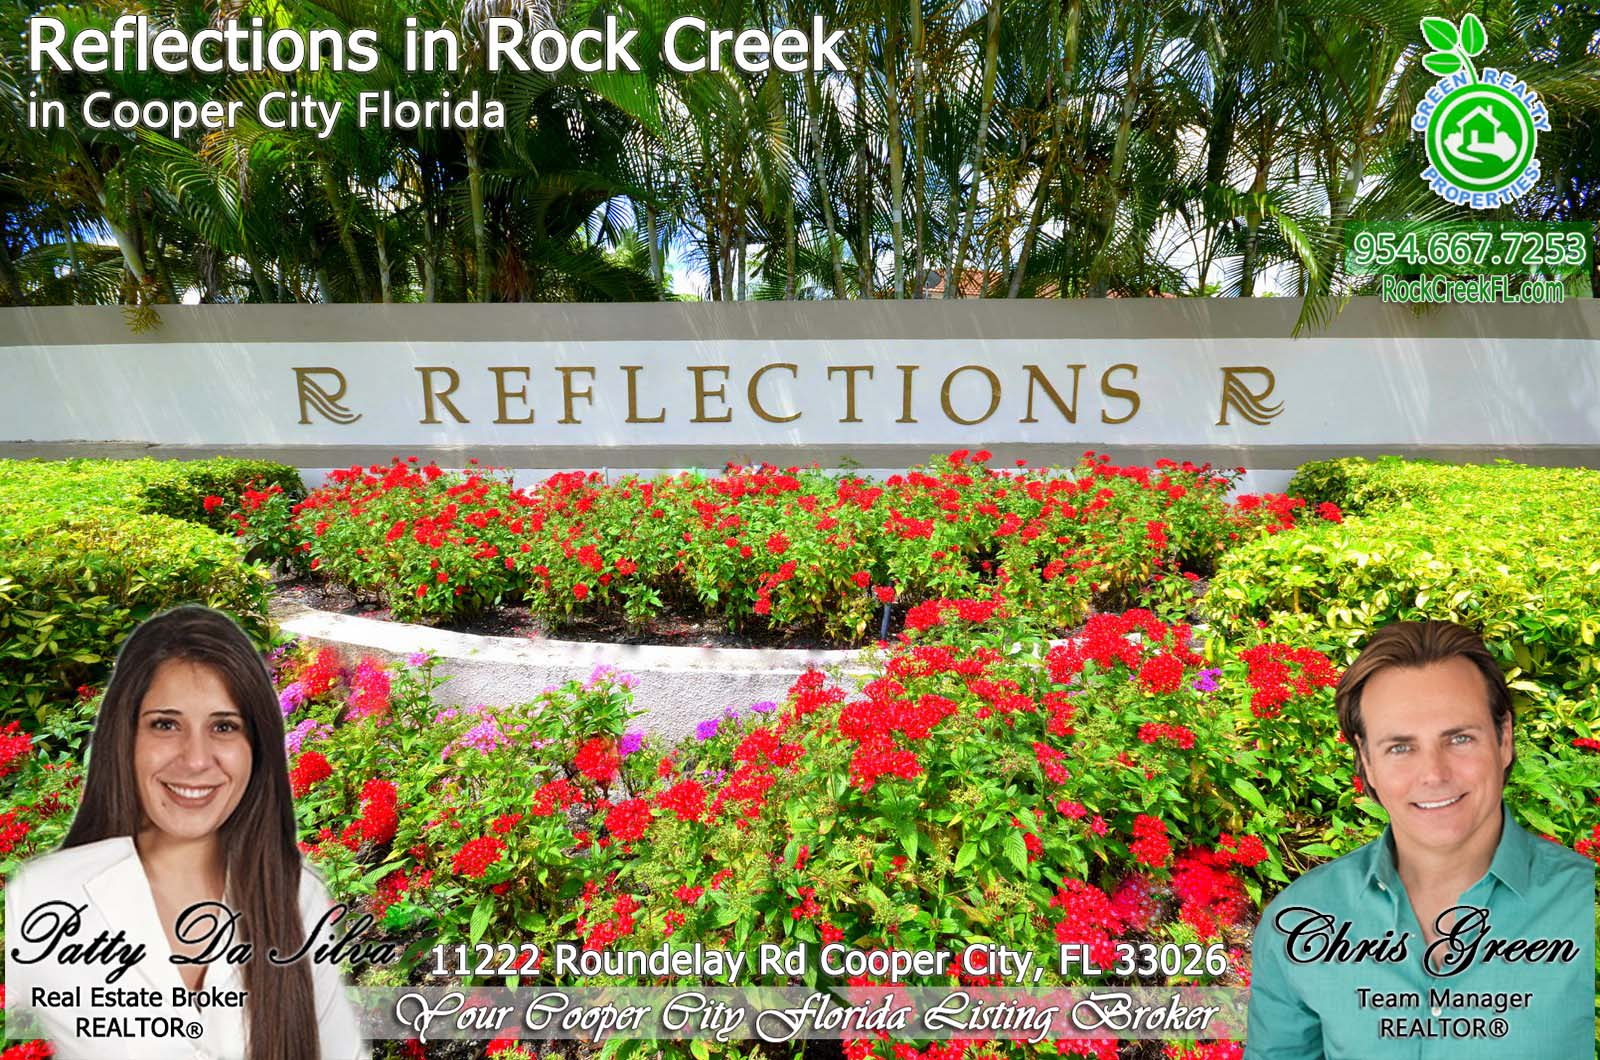 Reflections in Cooper City Rock Creek FL